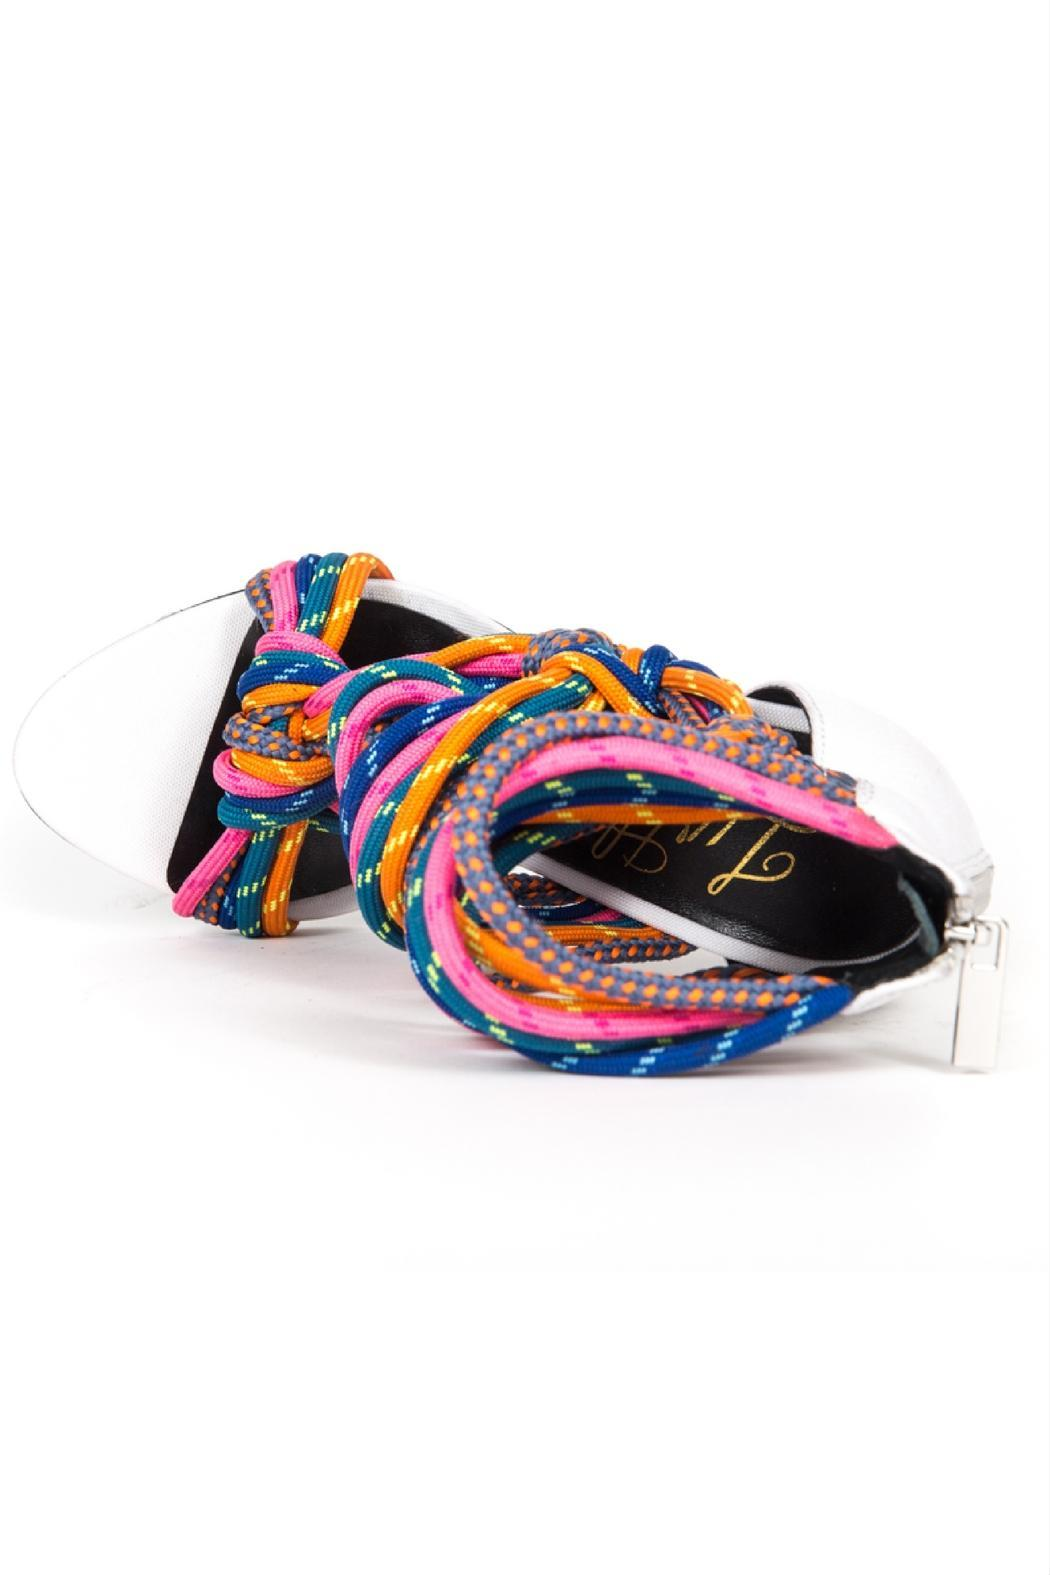 5b2bba1070 Lust For Life USA Multi-Colored Rope Heels from Michigan by Lifted ...